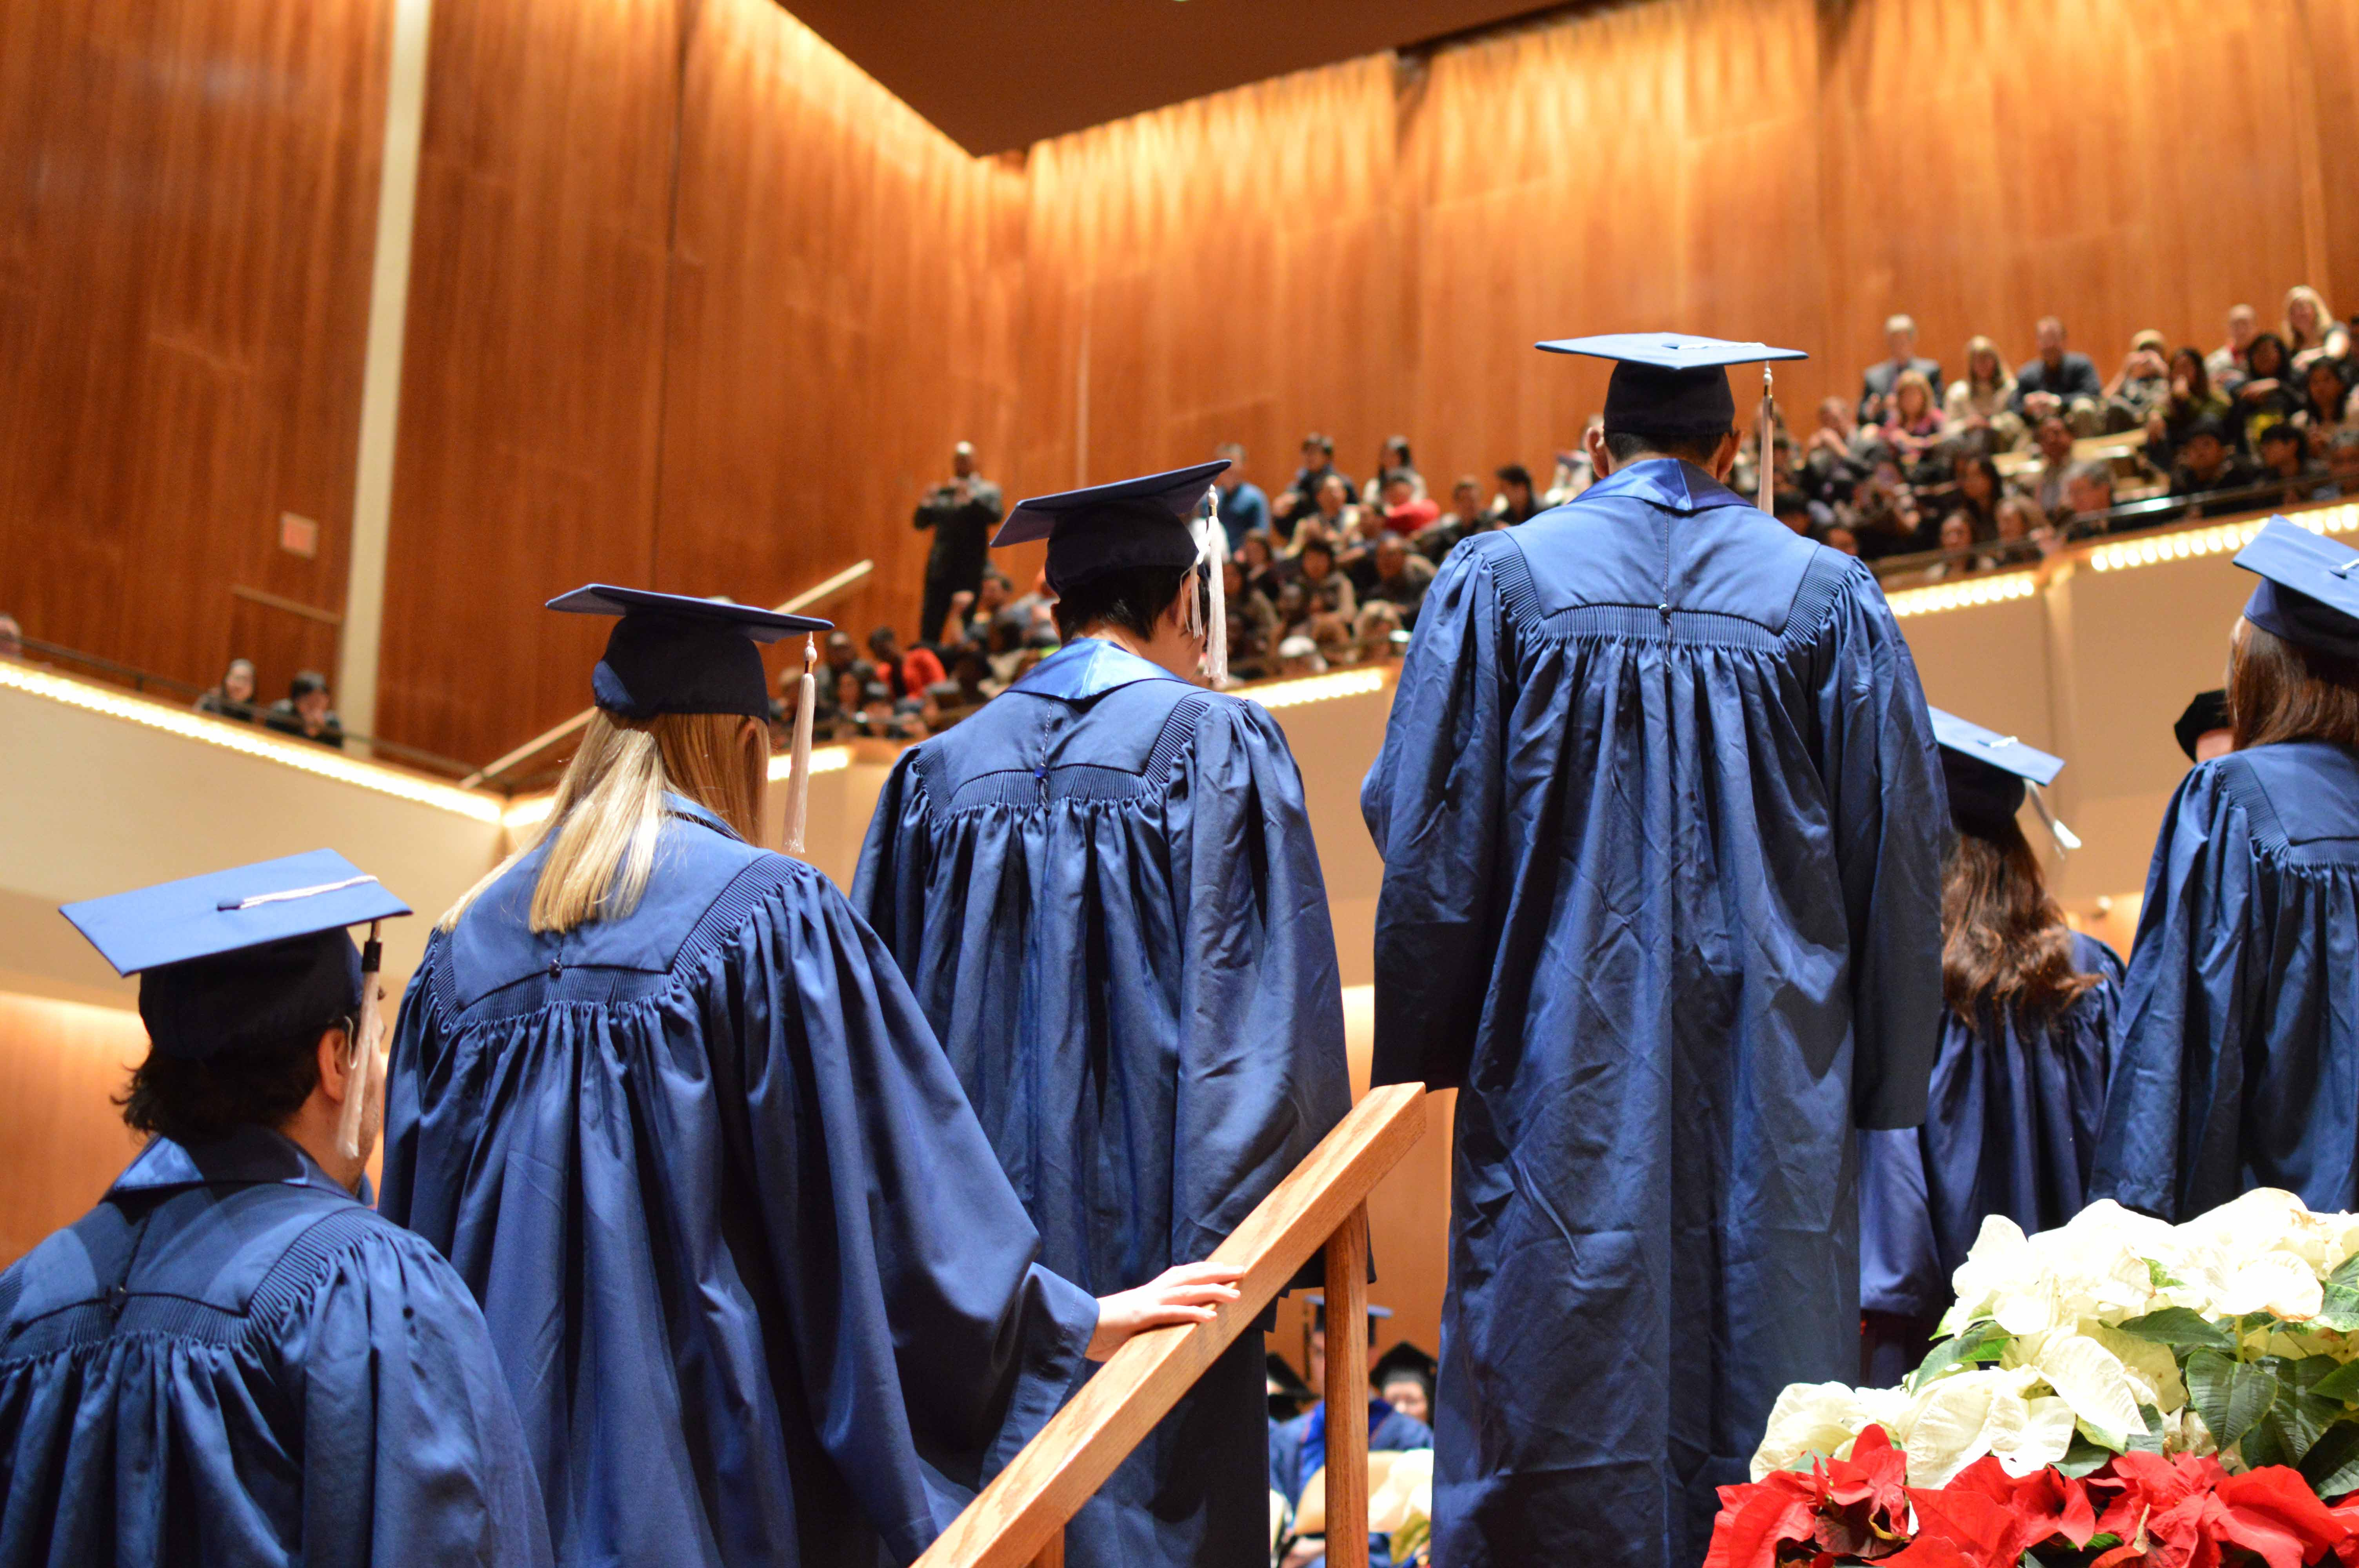 Graduating students from the College of Liberal Arts and Sciences walk onto stage during the fall convocation ceremony. A petition is circulating among students to bring former President Barack Obama to Convocation.